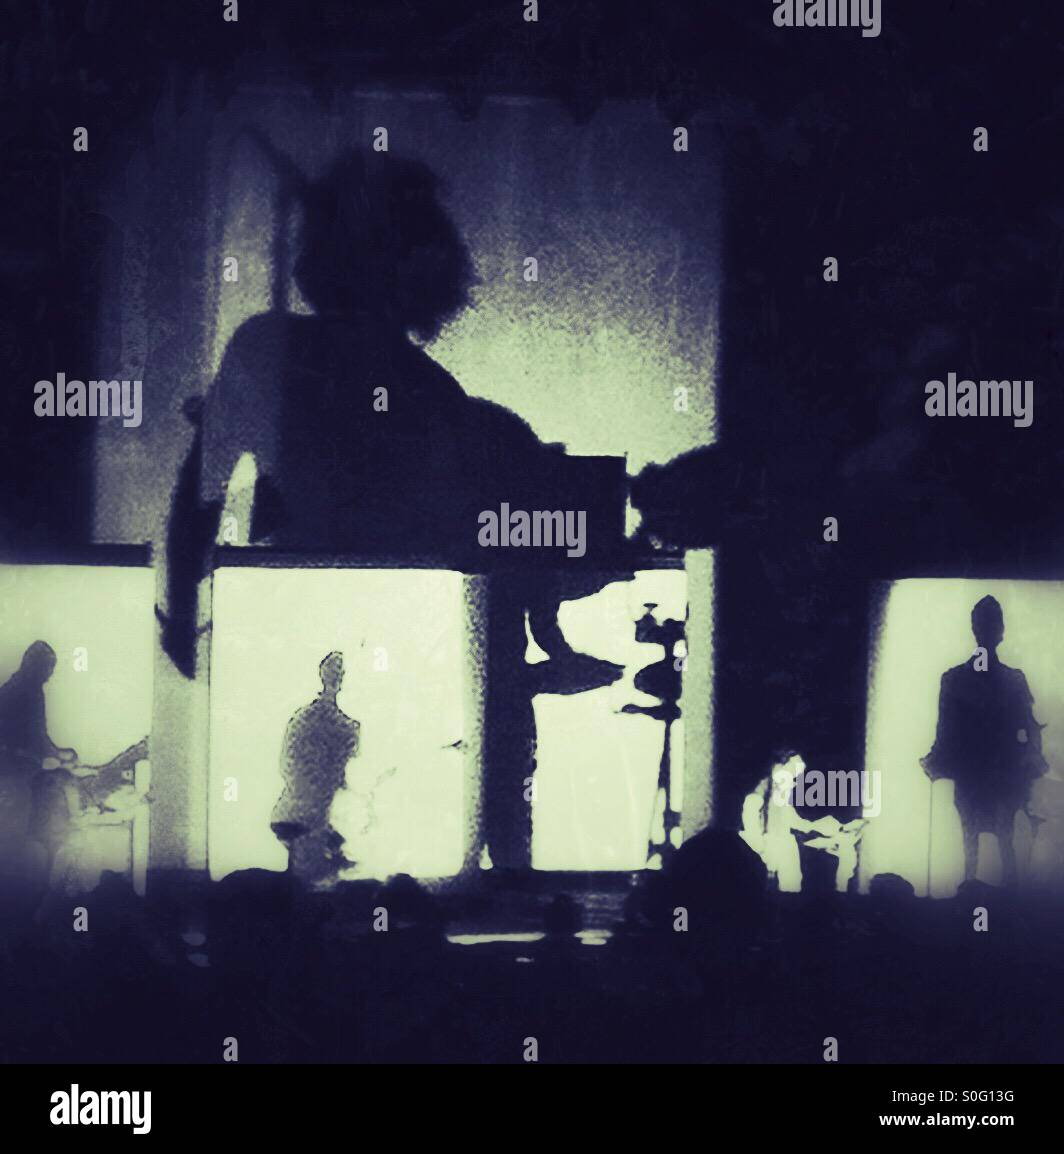 Shadow play on stage during a concert - Stock Image